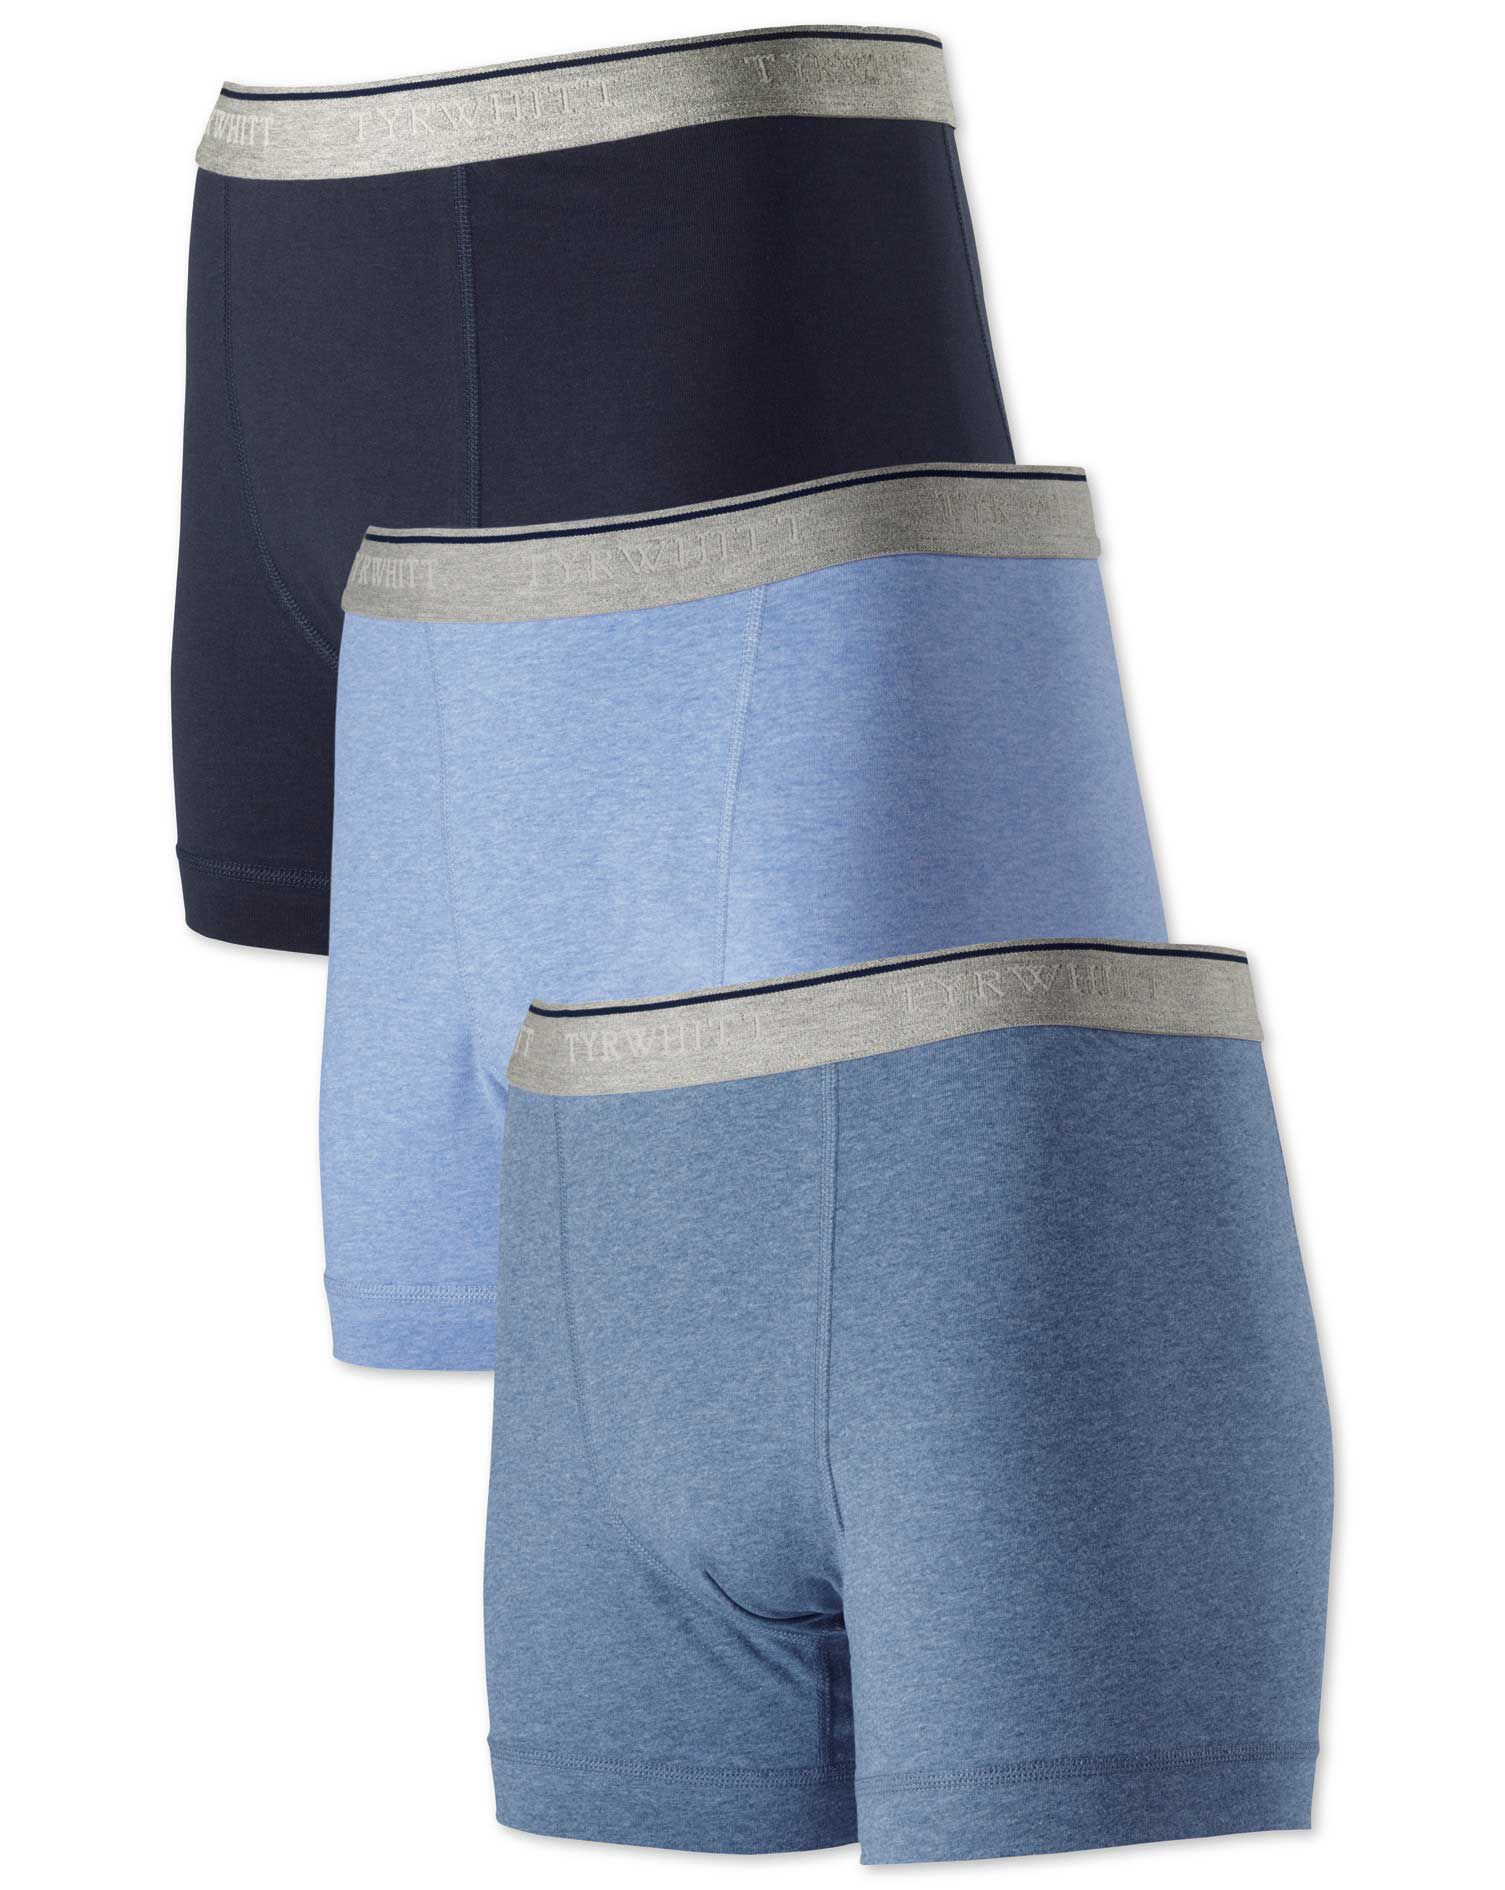 Blue Jersey 3 Pack Trunks Size XS by Charles Tyrwhitt